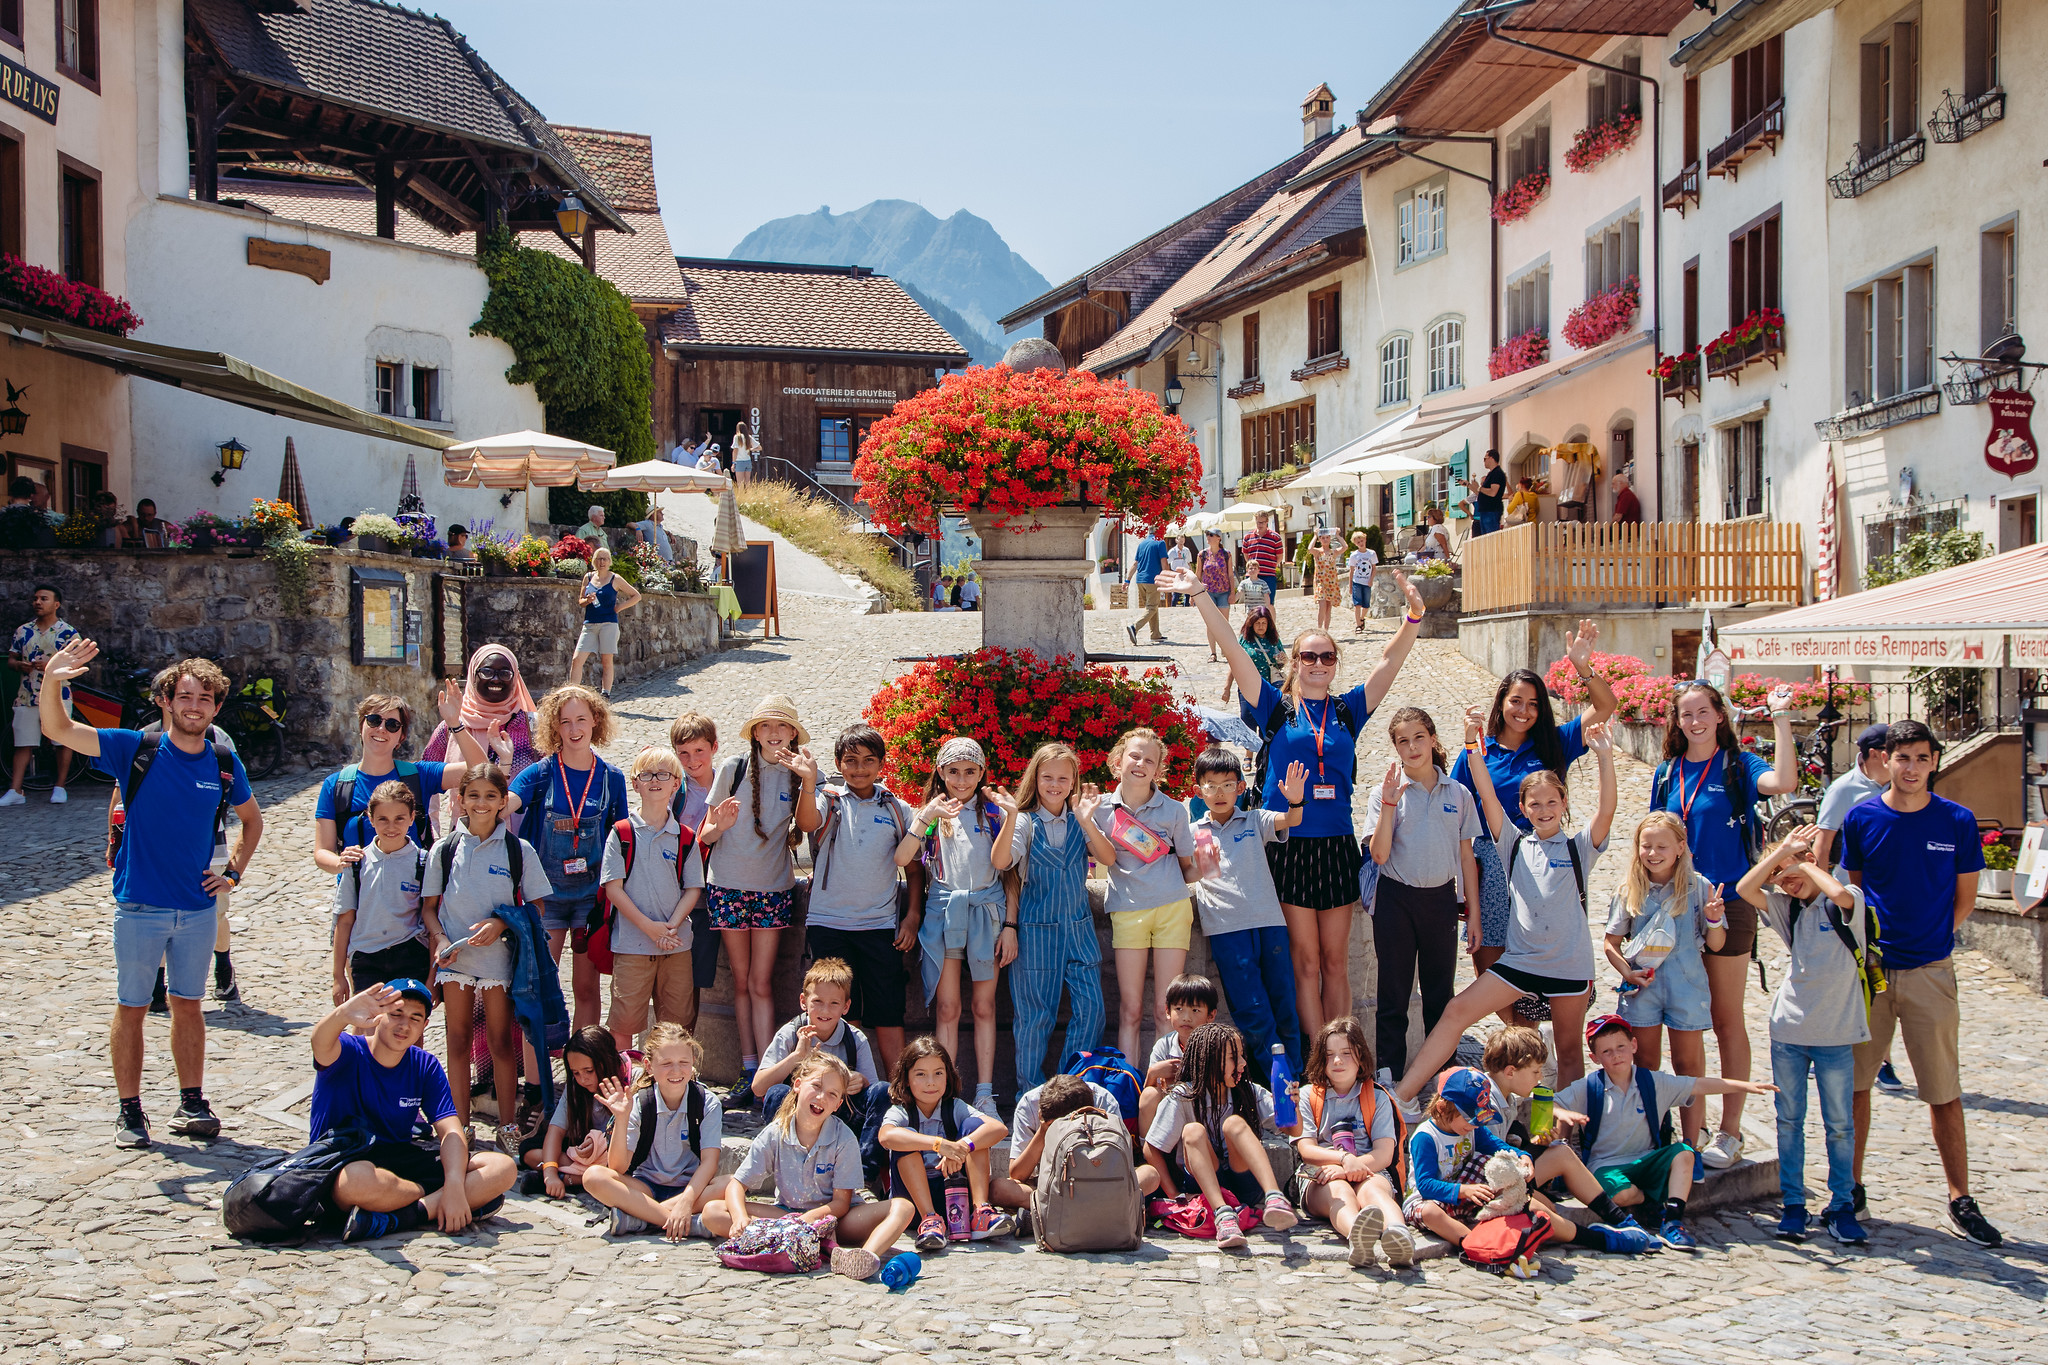 campers at Gruyere town